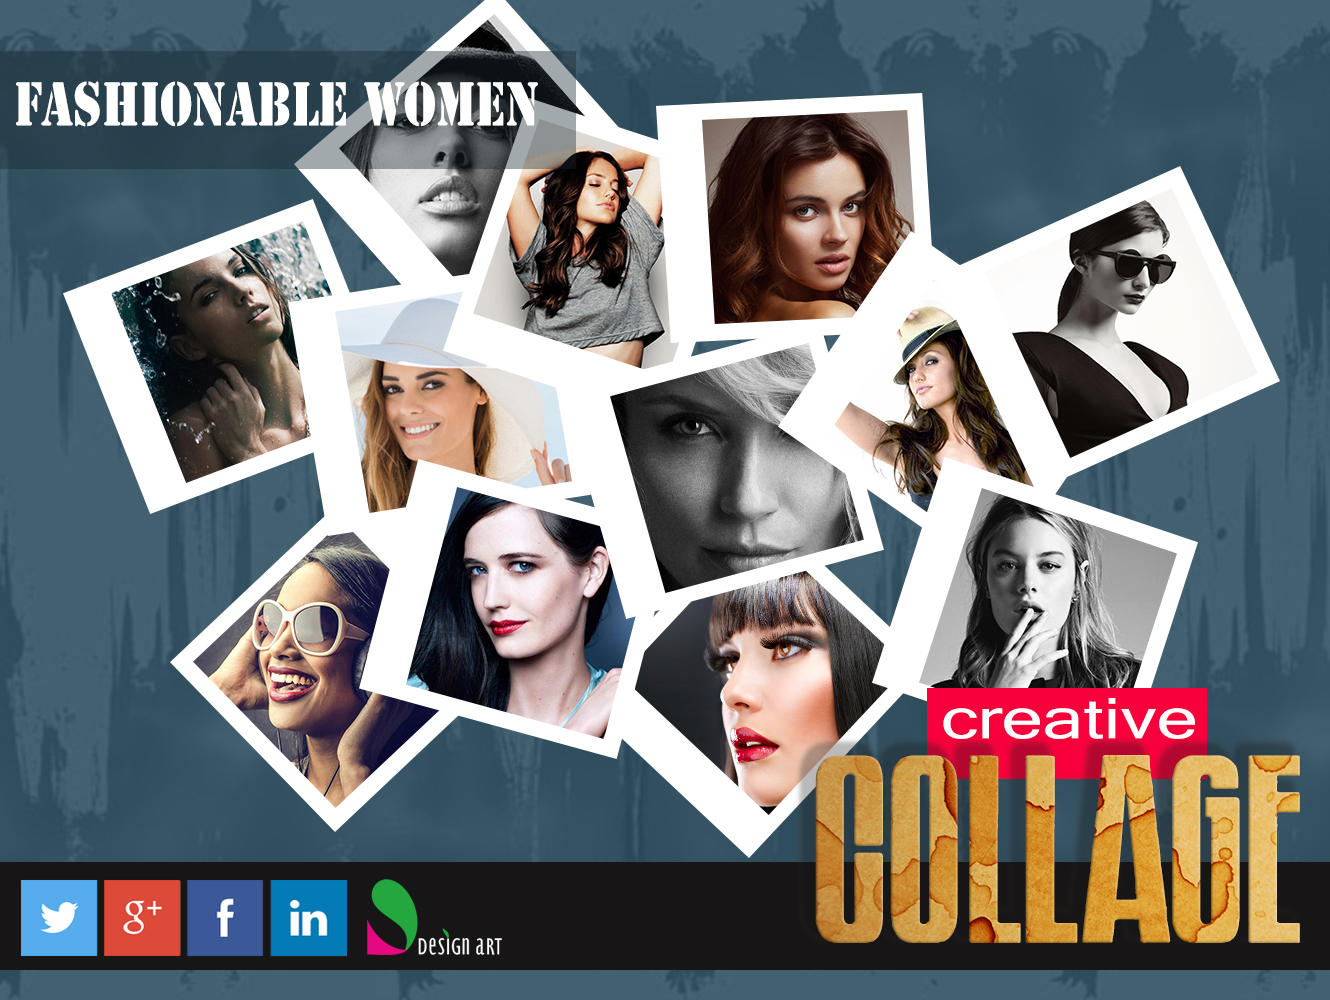 Fashionable Women Creative Photo Collage Design  Dashy. Research Proposal Outline Template. Design A Sign Online Free. 4 Up Postcard Template. Outdoor Graduation Party Ideas. Facebook Login Sign Up In English. Non Refundable Deposit Agreement Template. Microsoft Word Portfolio Template. Book Cover Design Software